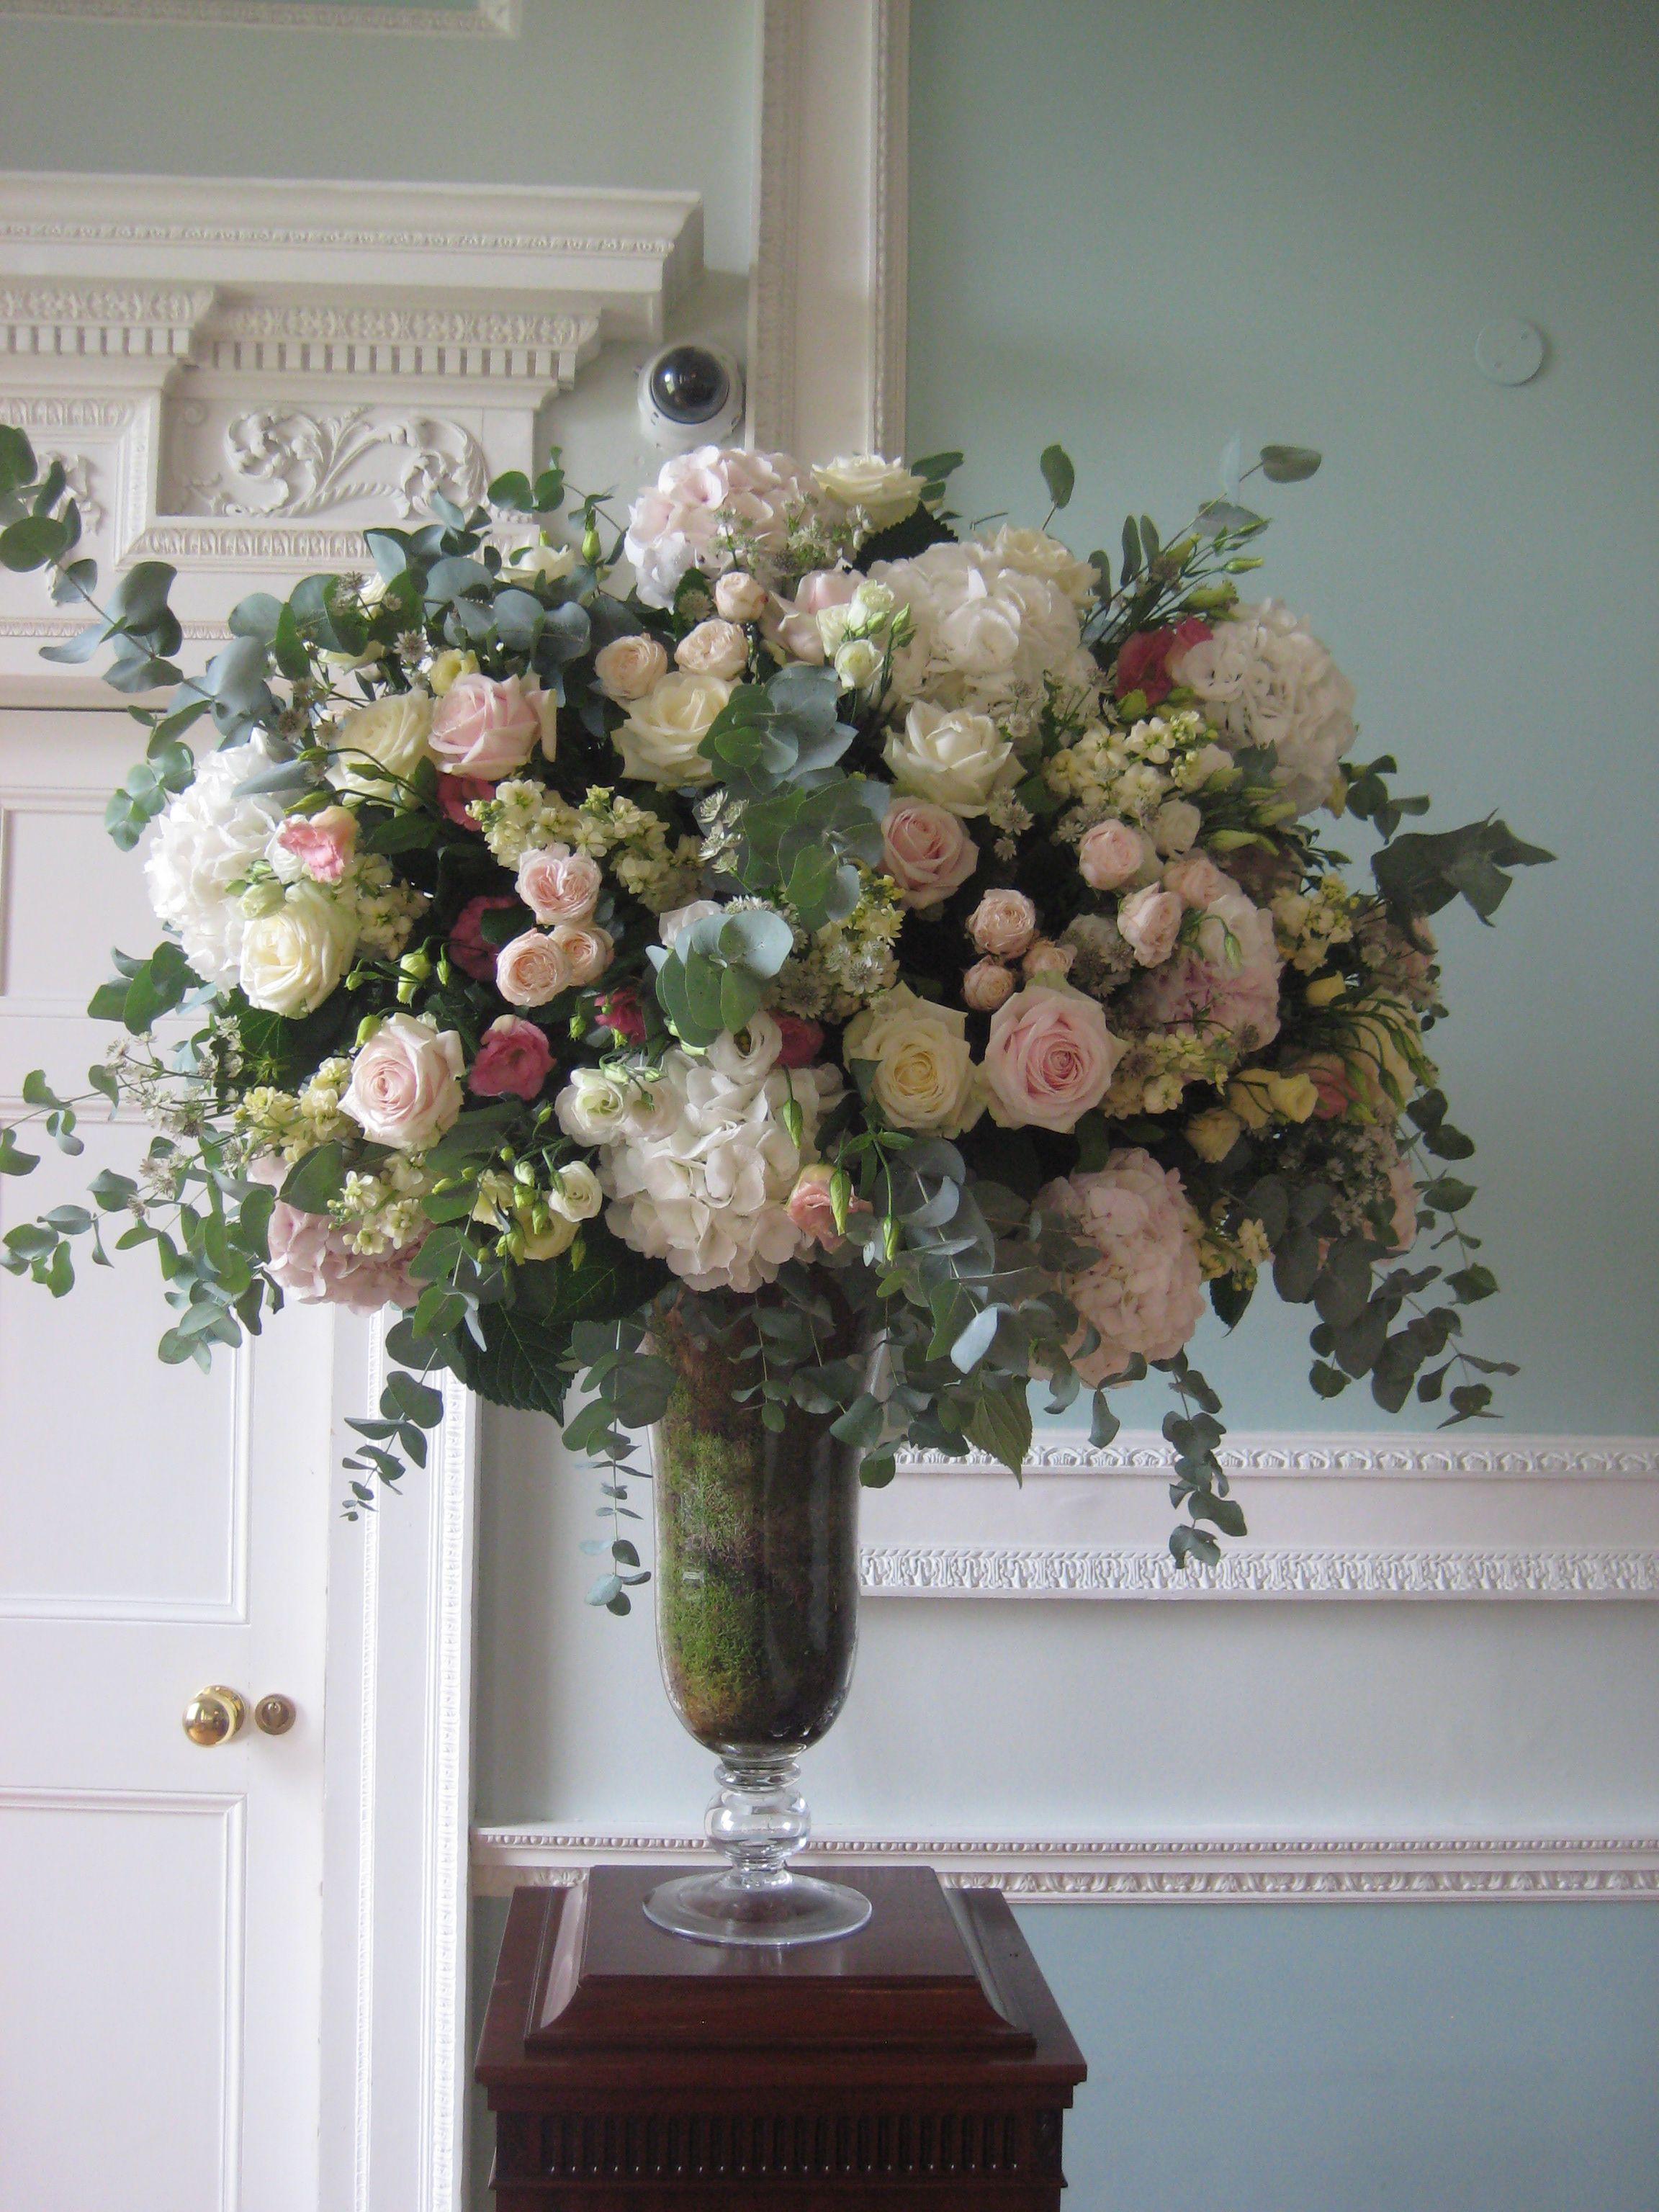 Wedding Florist London Wedding Flowers Amanda Austin Large Flower Arrangements Flower Bouquet Wedding Church Wedding Flowers